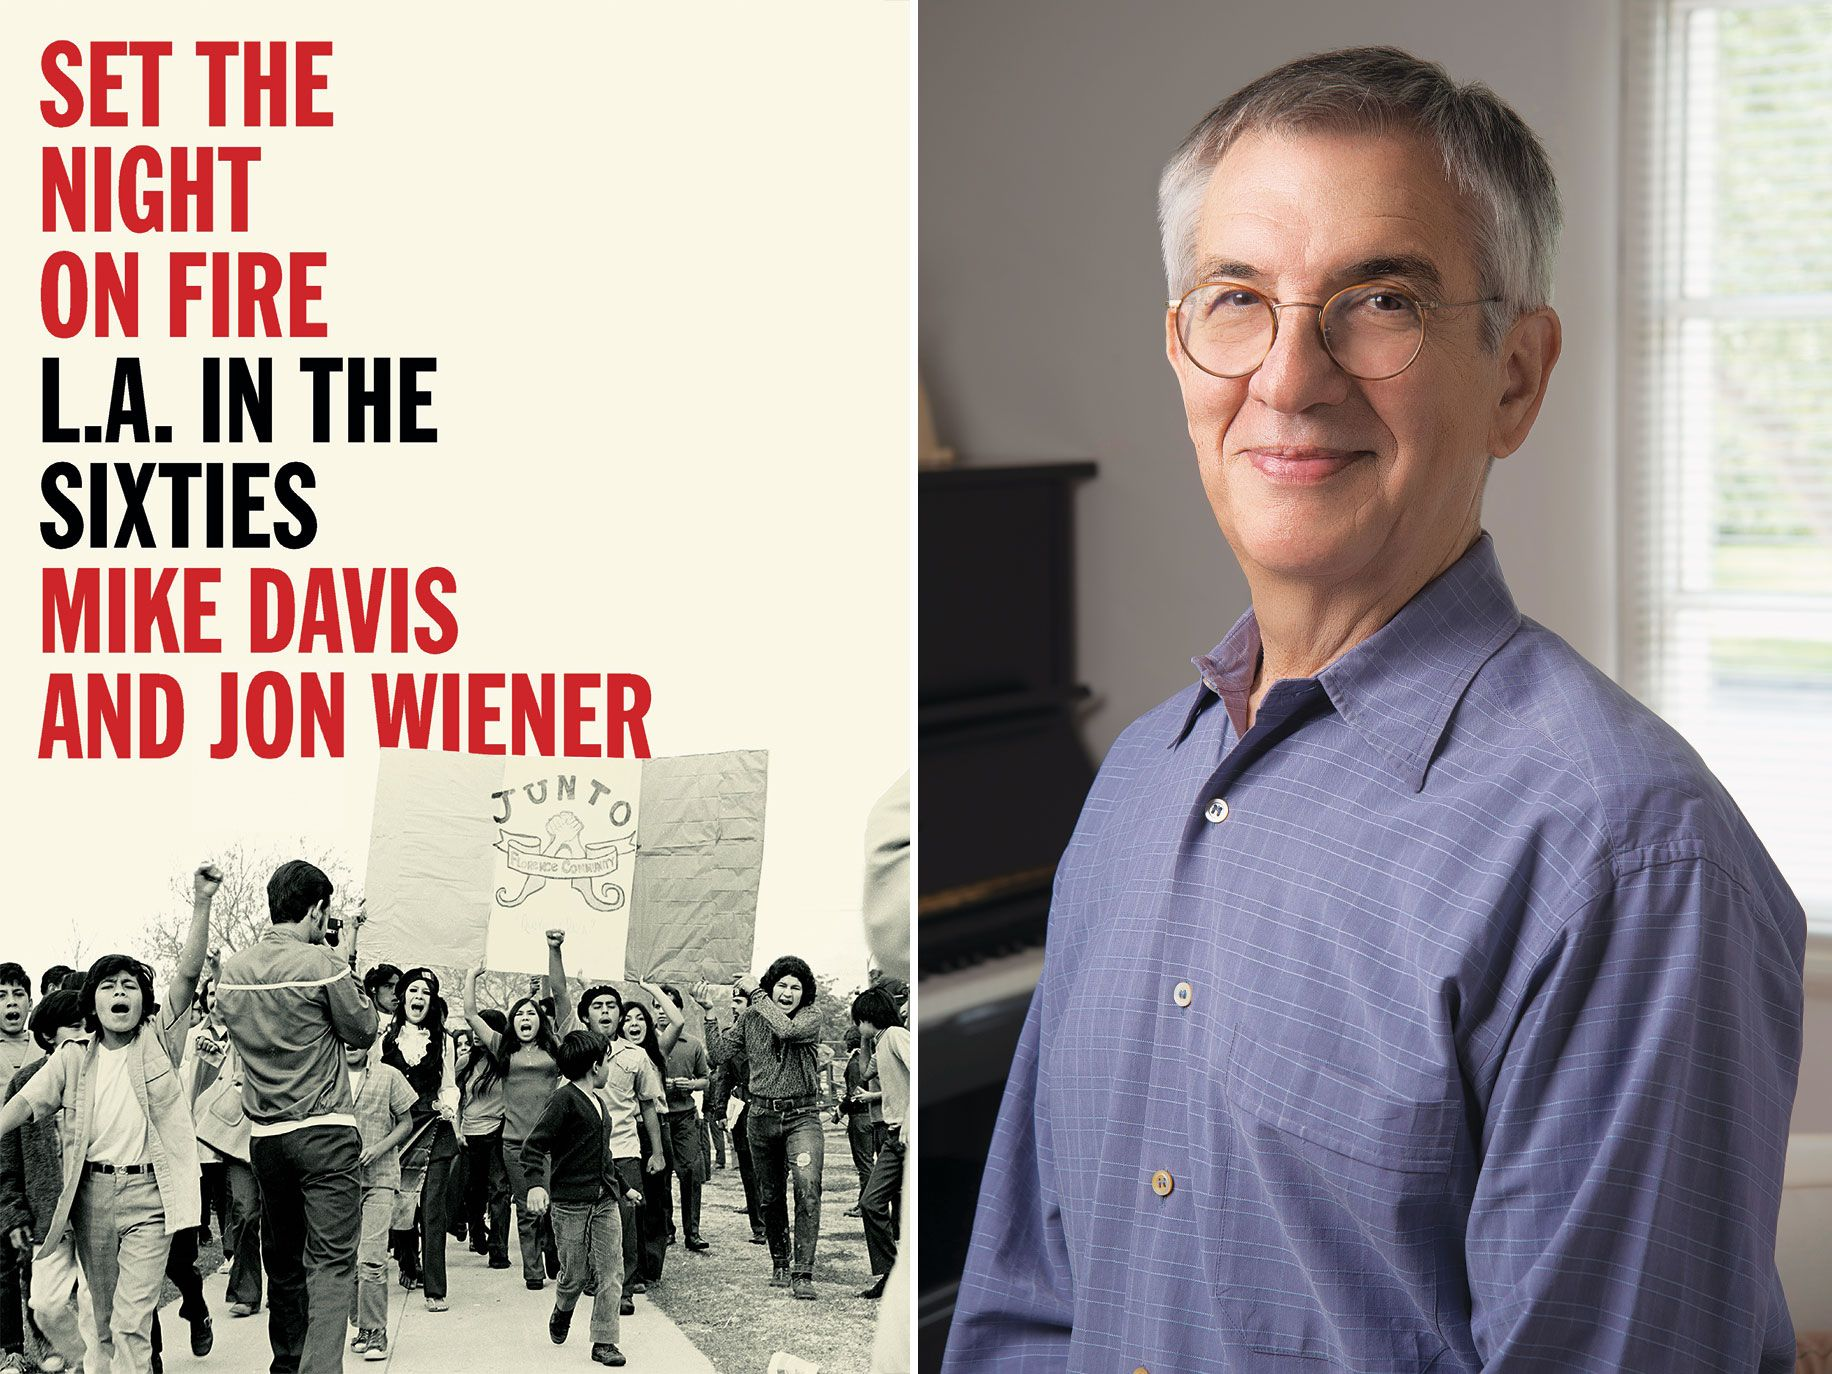 Jon Wiener is the coauthor, with Mike Davis, of Set the Night on Fire: L.A. in the Sixties, a long-overdue history of the City of Angels during that tumultuous time.